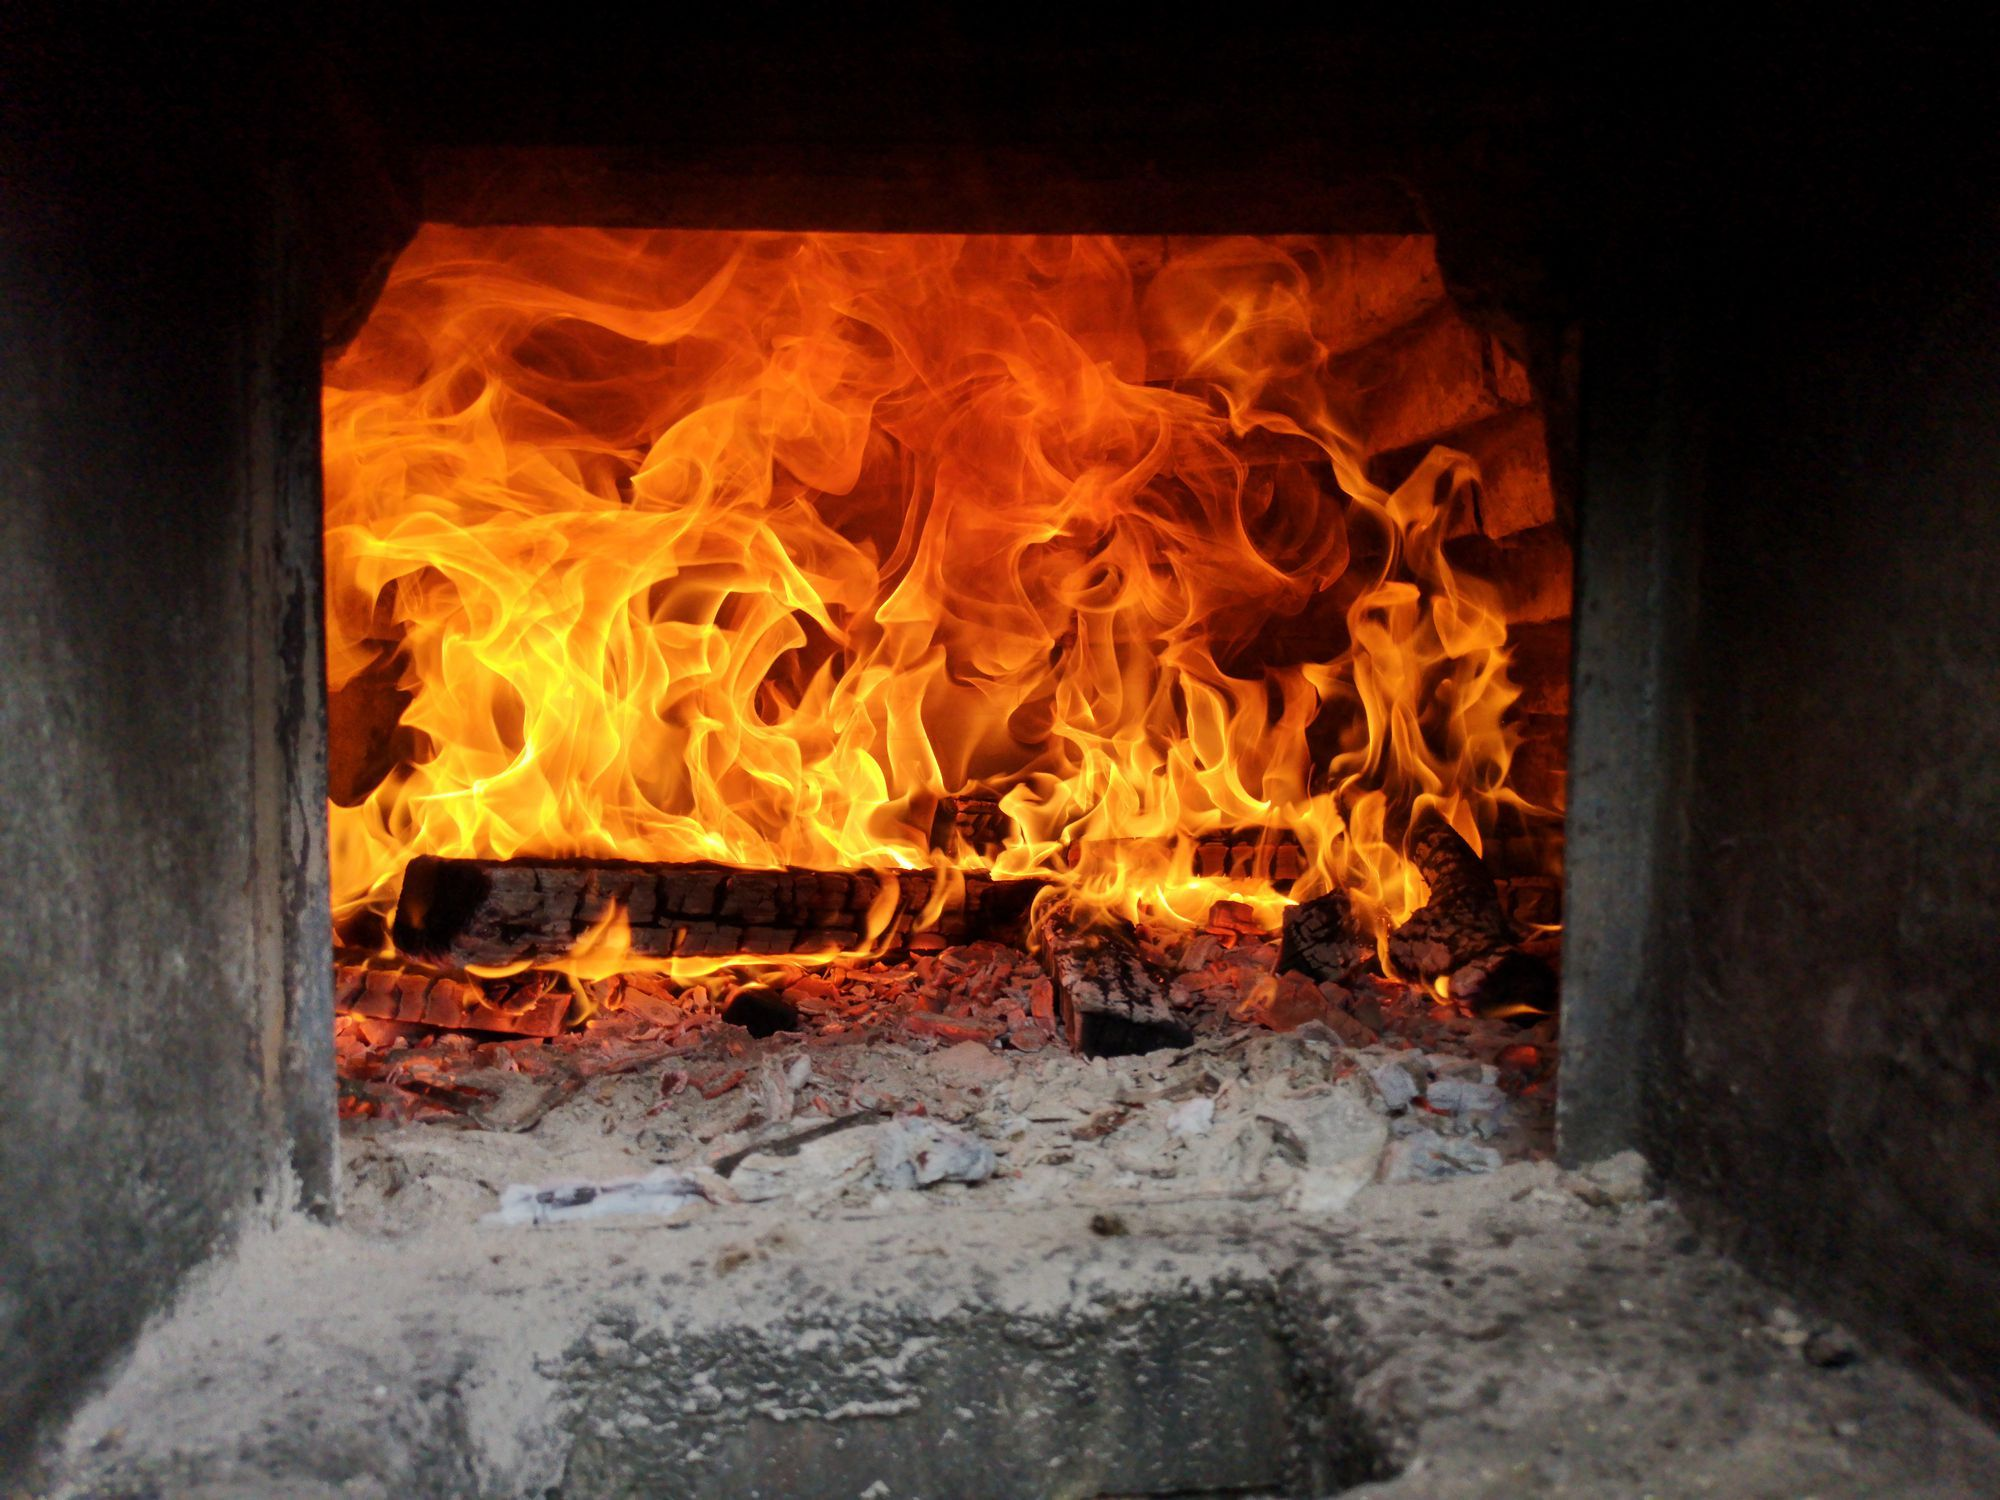 Can Wood Burning Stoves Be Unhealthy For You And Your Home